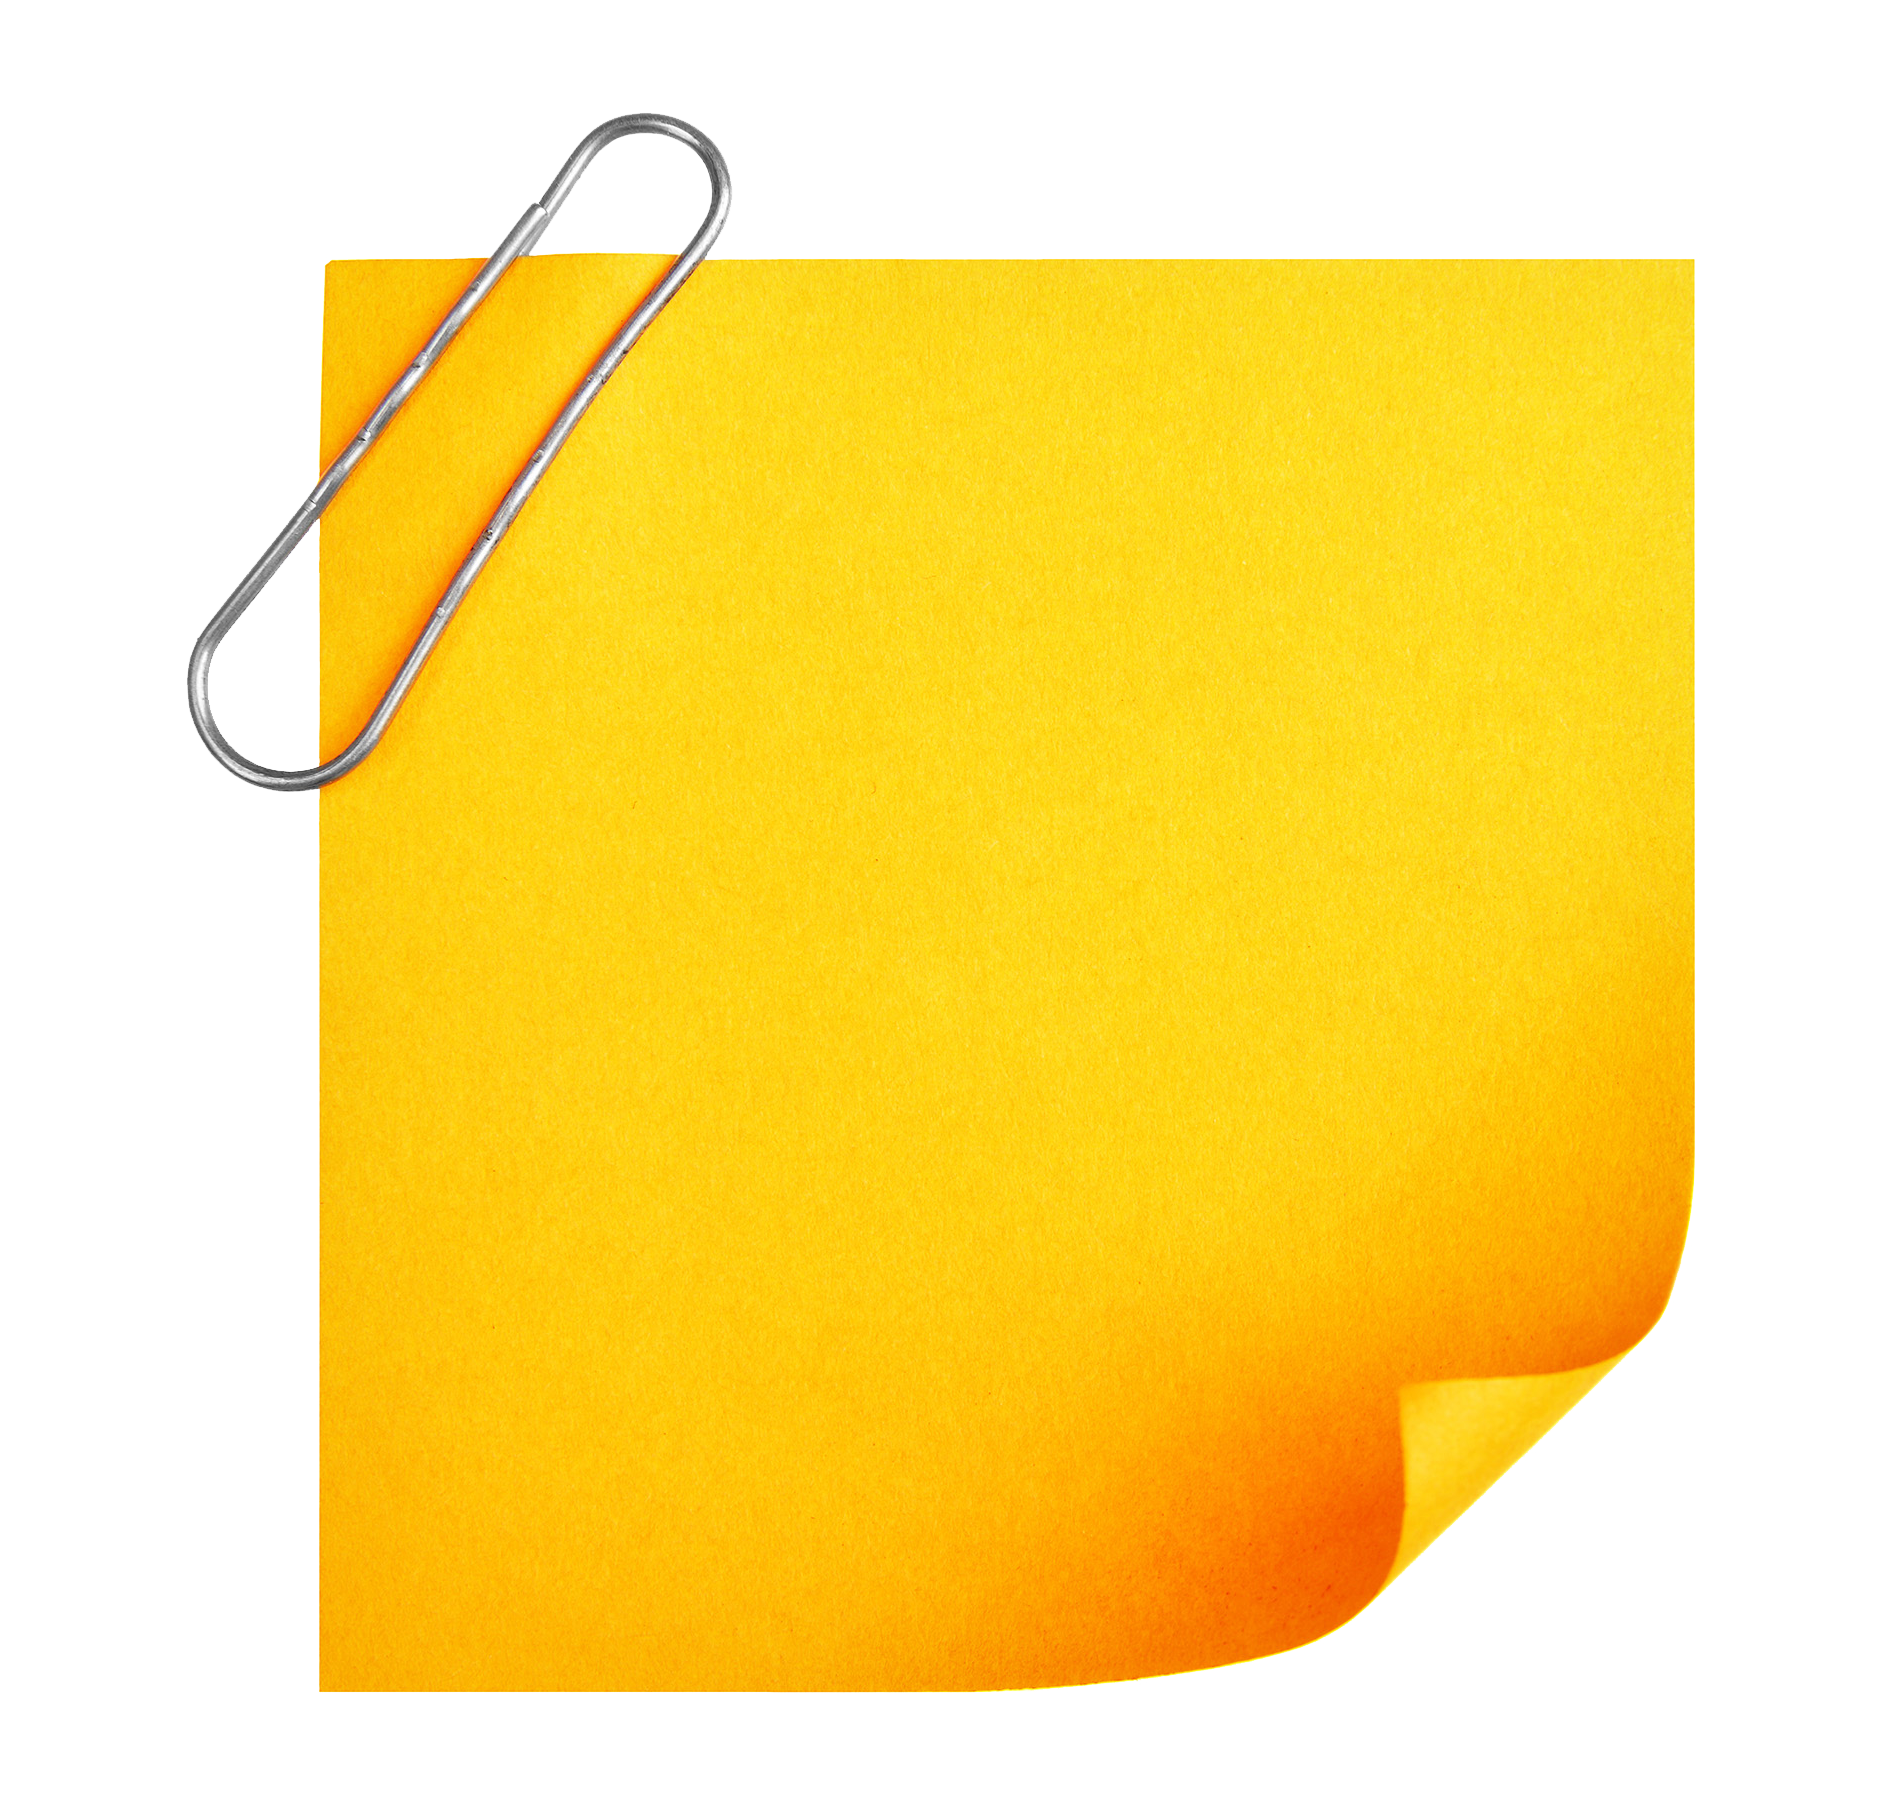 Post-it notes png. Paper post it note